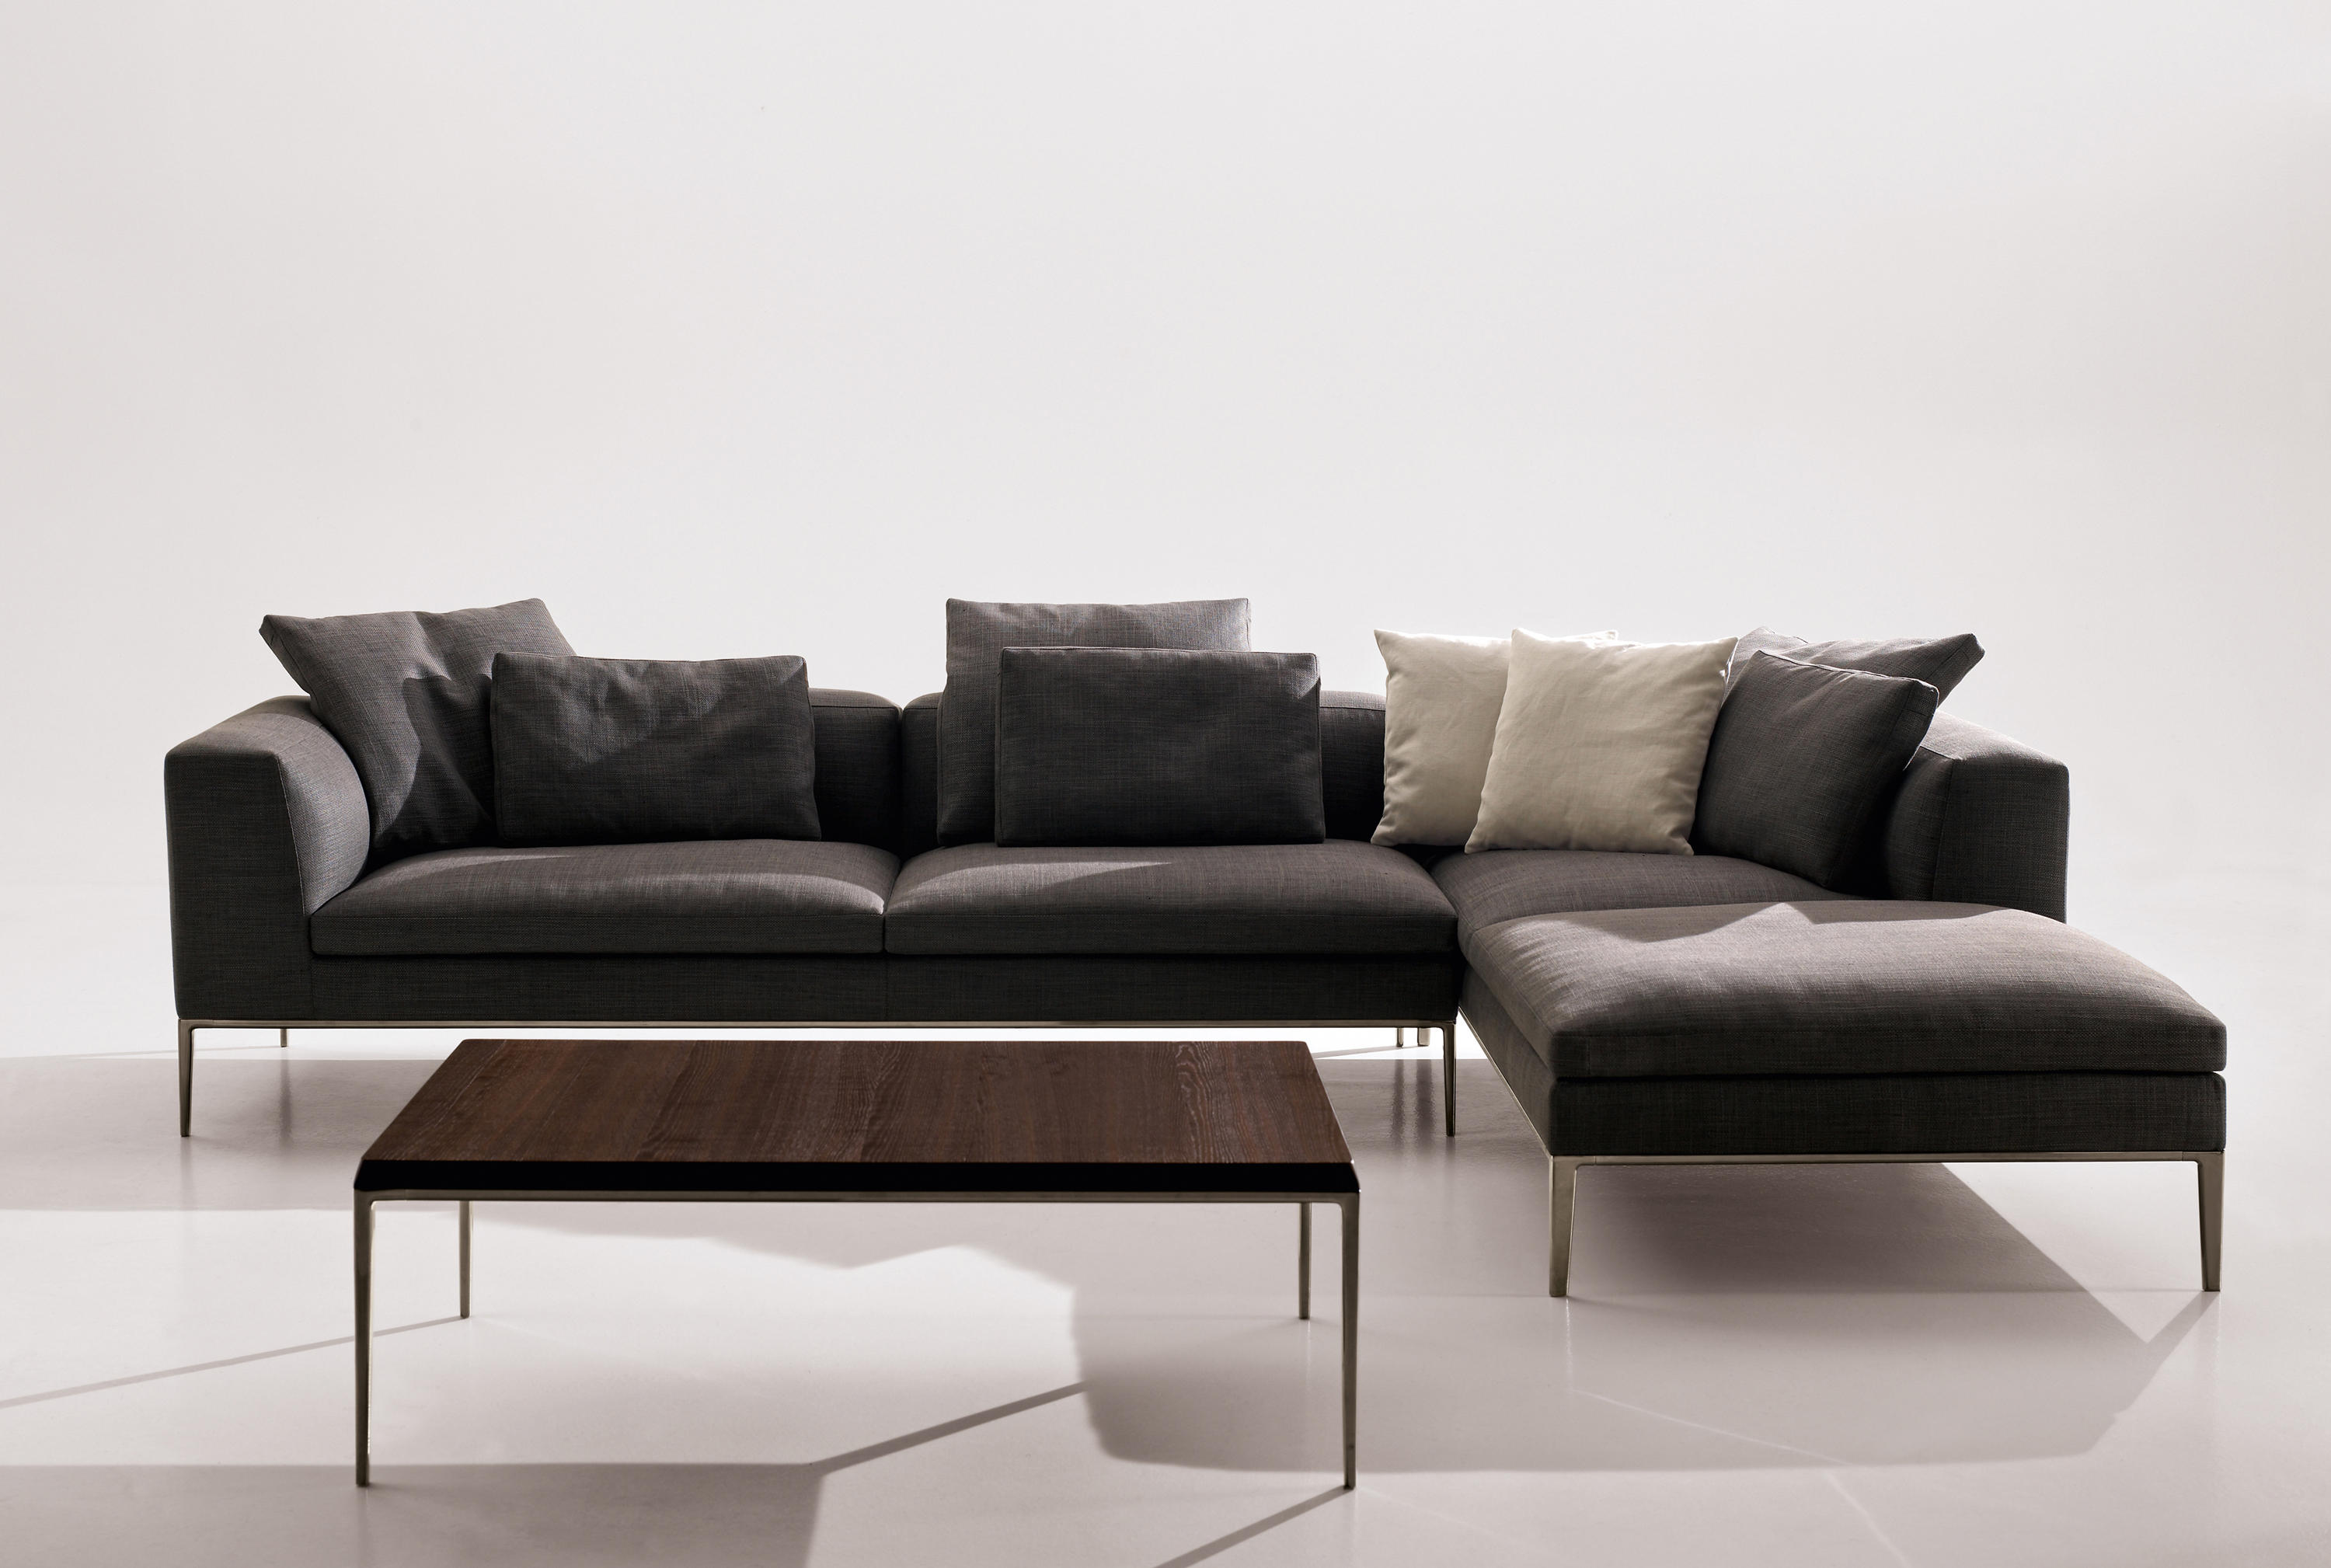 different types of sofas sofitalia leather sofa michel - lounge tables from b&b italia | architonic